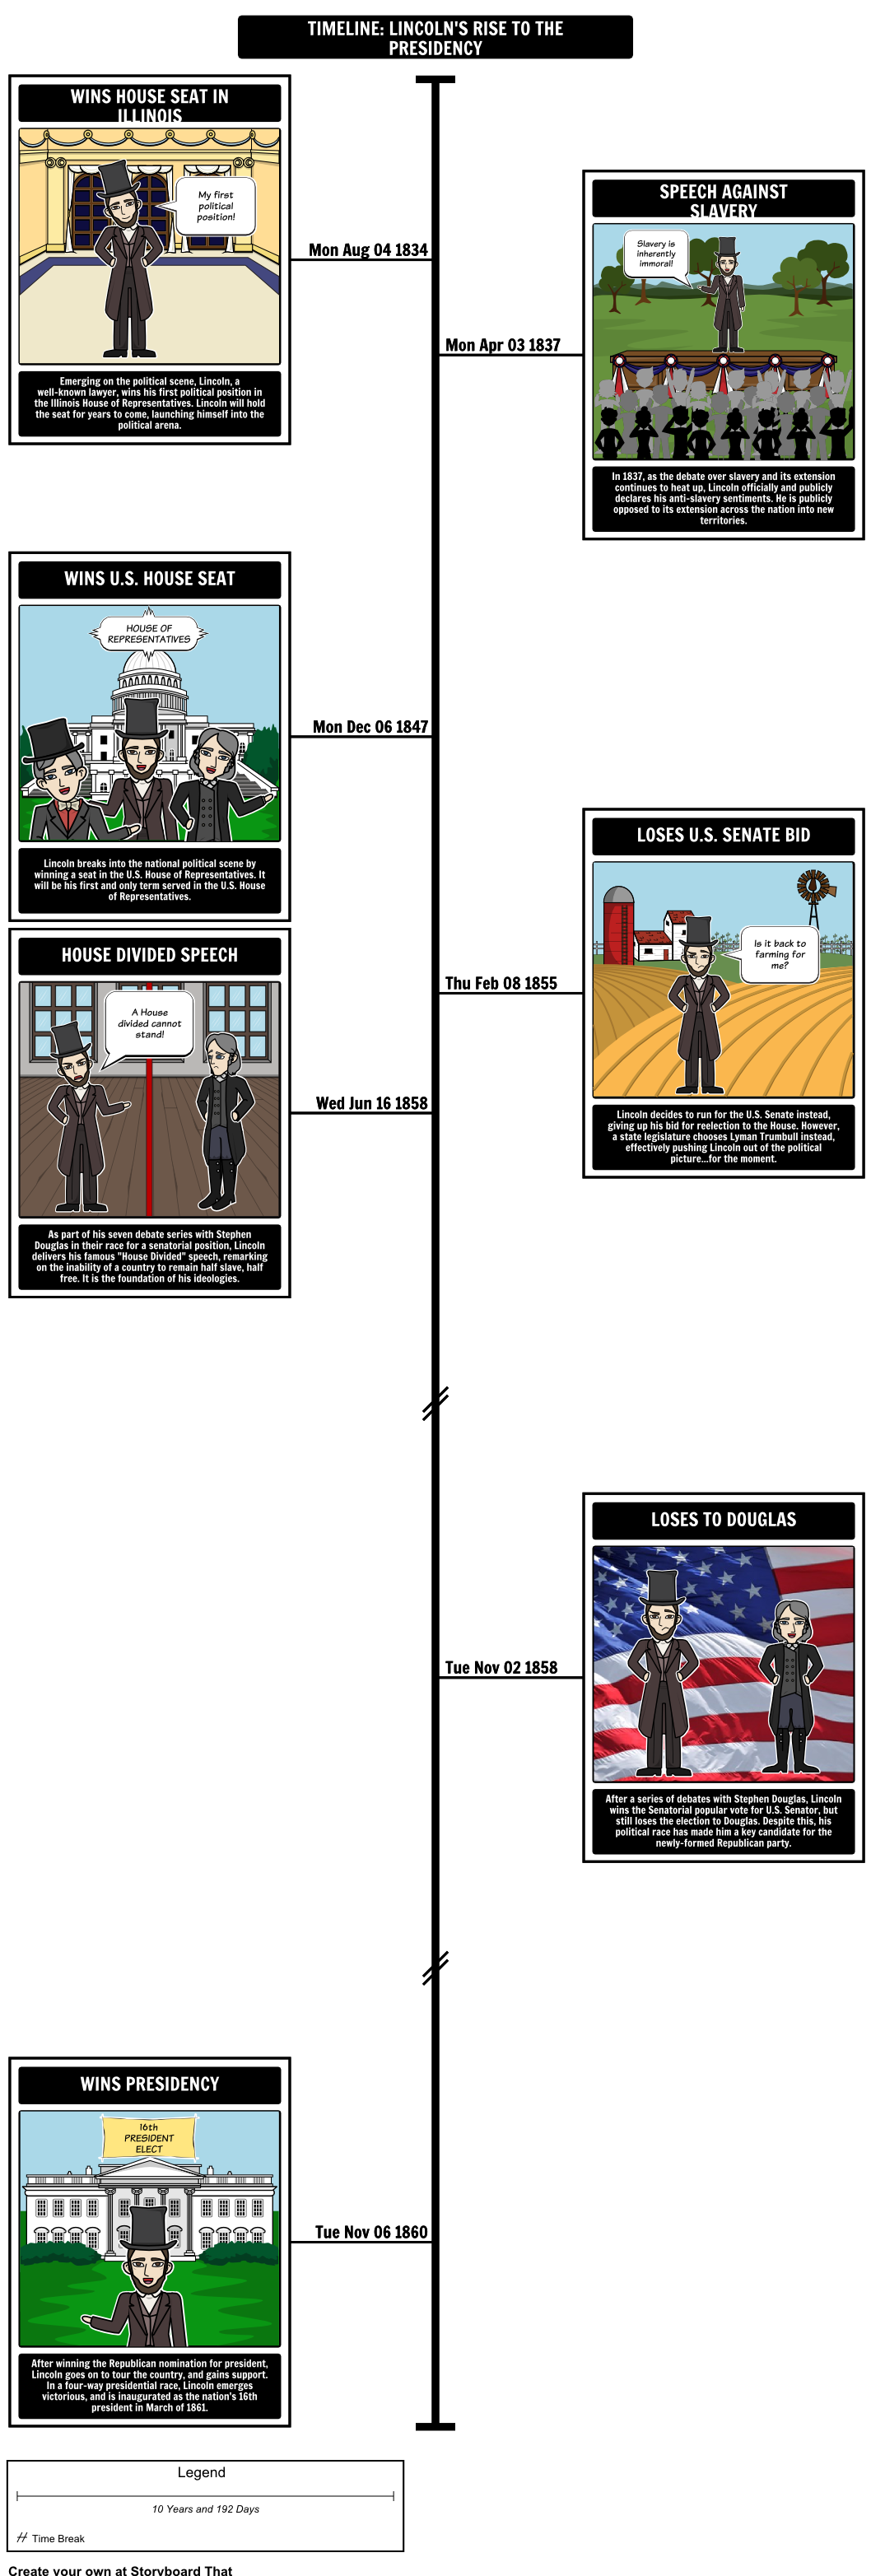 Articles of confederation president timeline